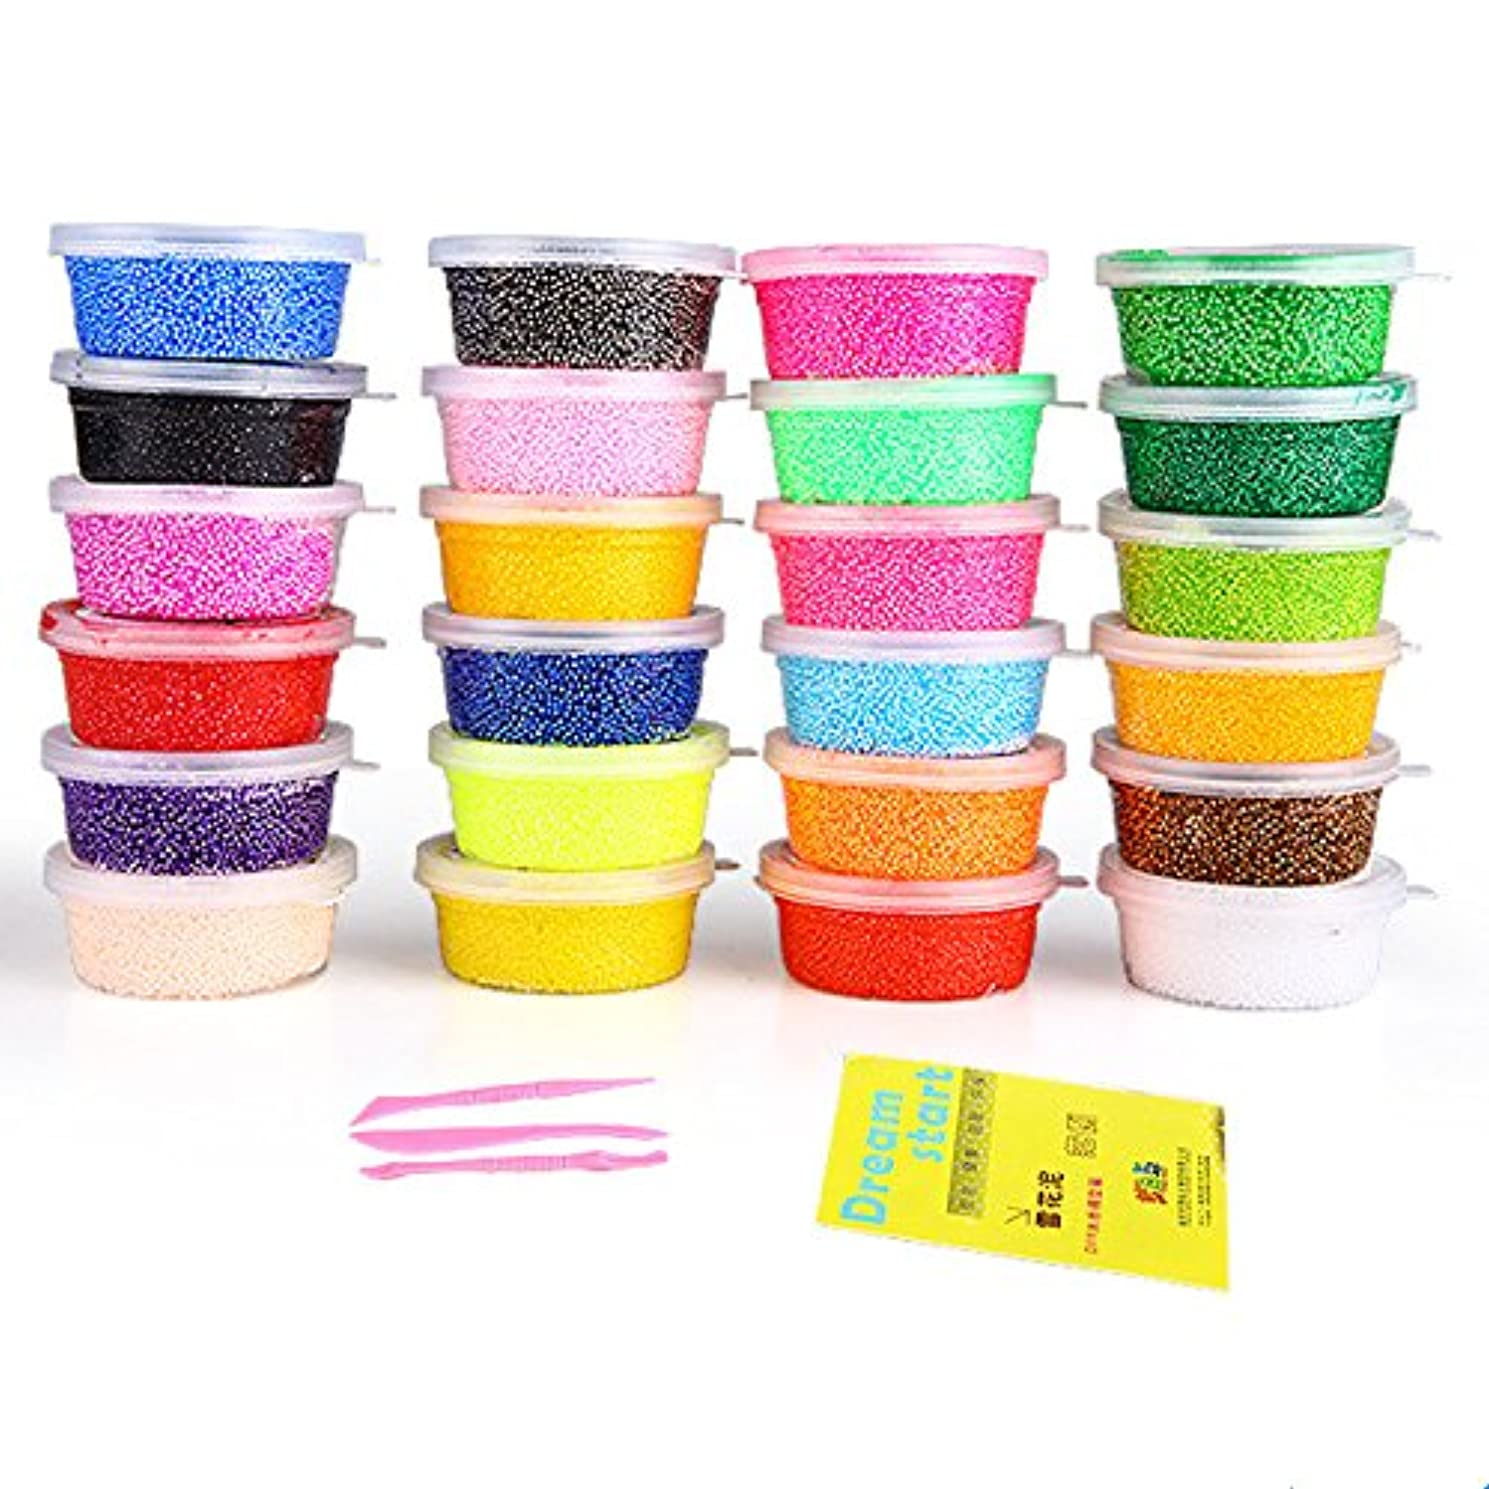 Foam Modeling Clay, Dasiter 24 Colors Polymer Clay DIY Soft Sticky Kids Clay Air Dry Clay Ultra Light Toys Crafts,20g/Case